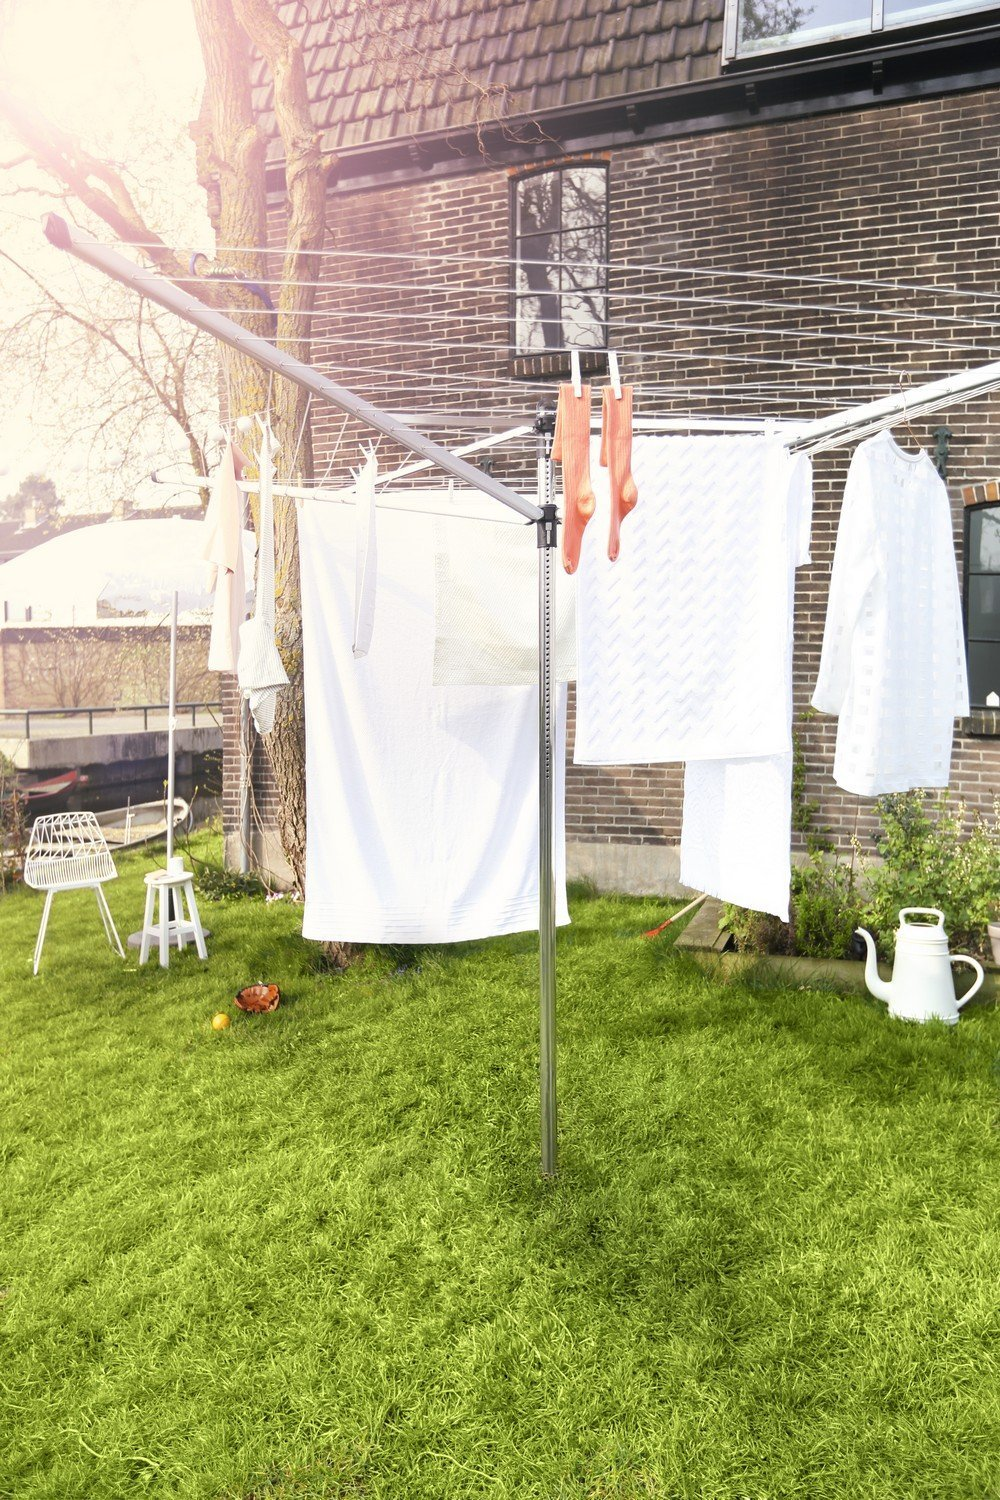 Brabantia Lift-o-Matic Large Rotary Airer Clothesline with Metal Soil Spear 197 Feet Silver